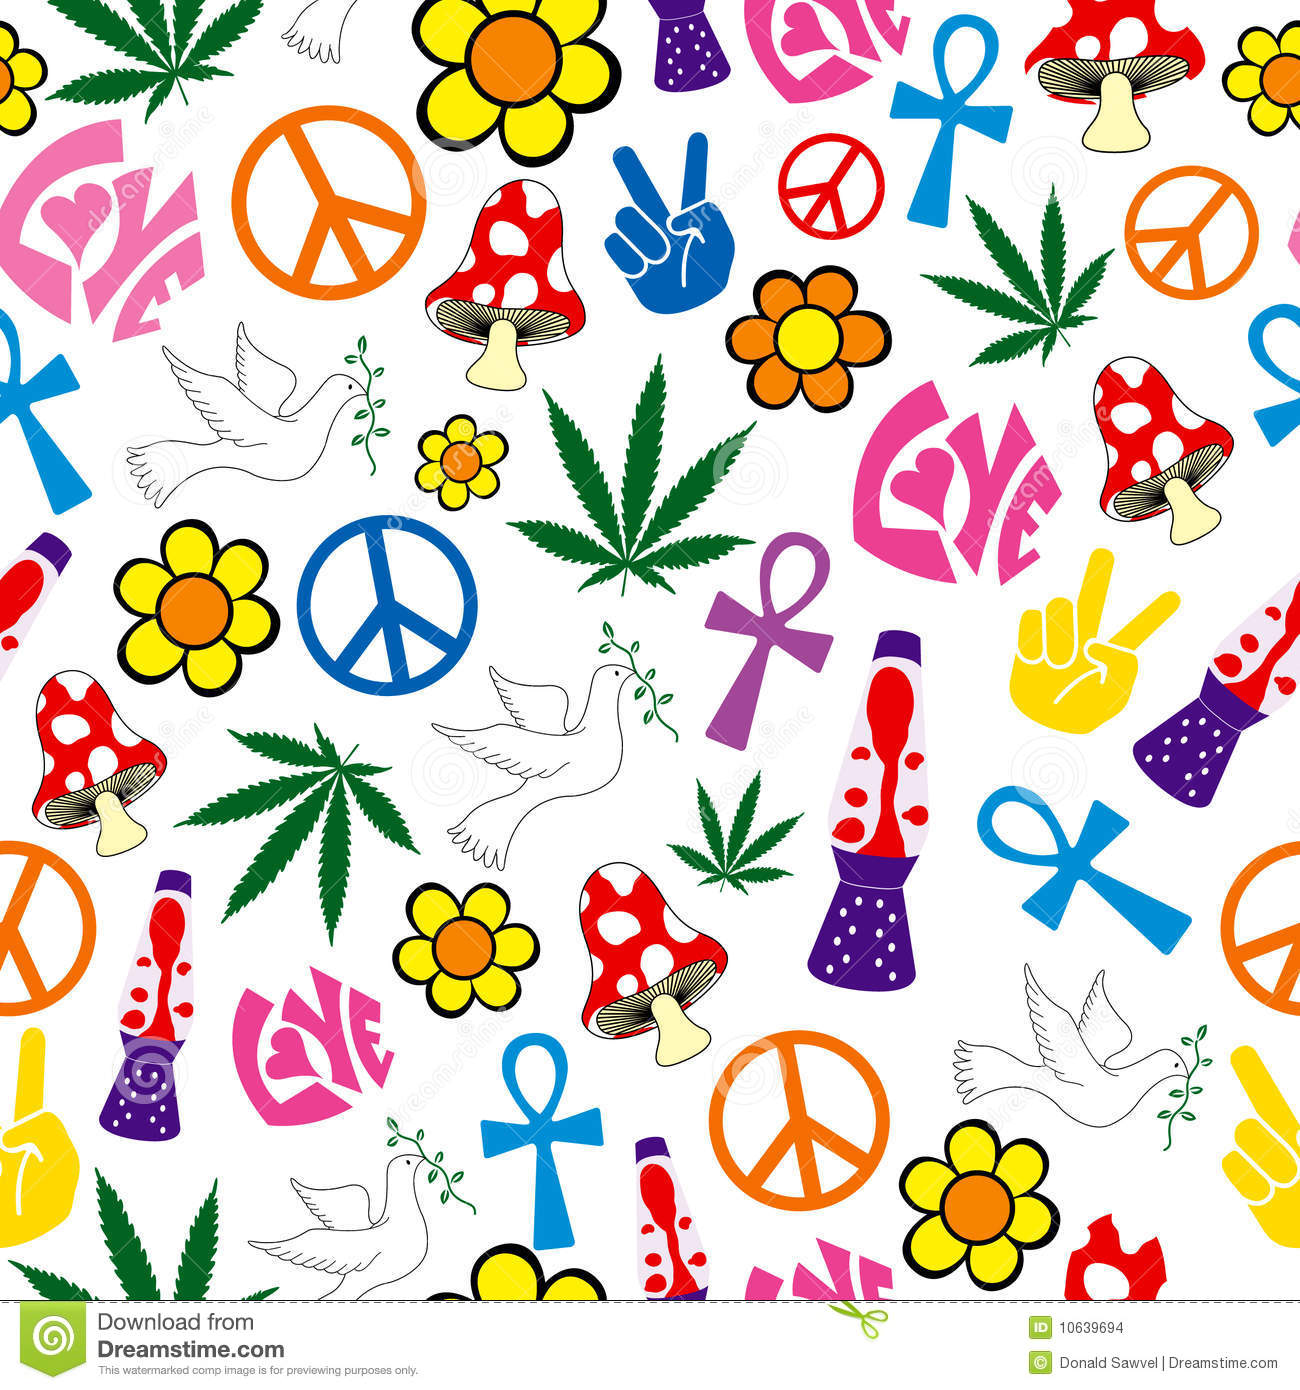 Wallpaper Iphone Peace And Love : Peace And Love Backgrounds - WallpaperSafari